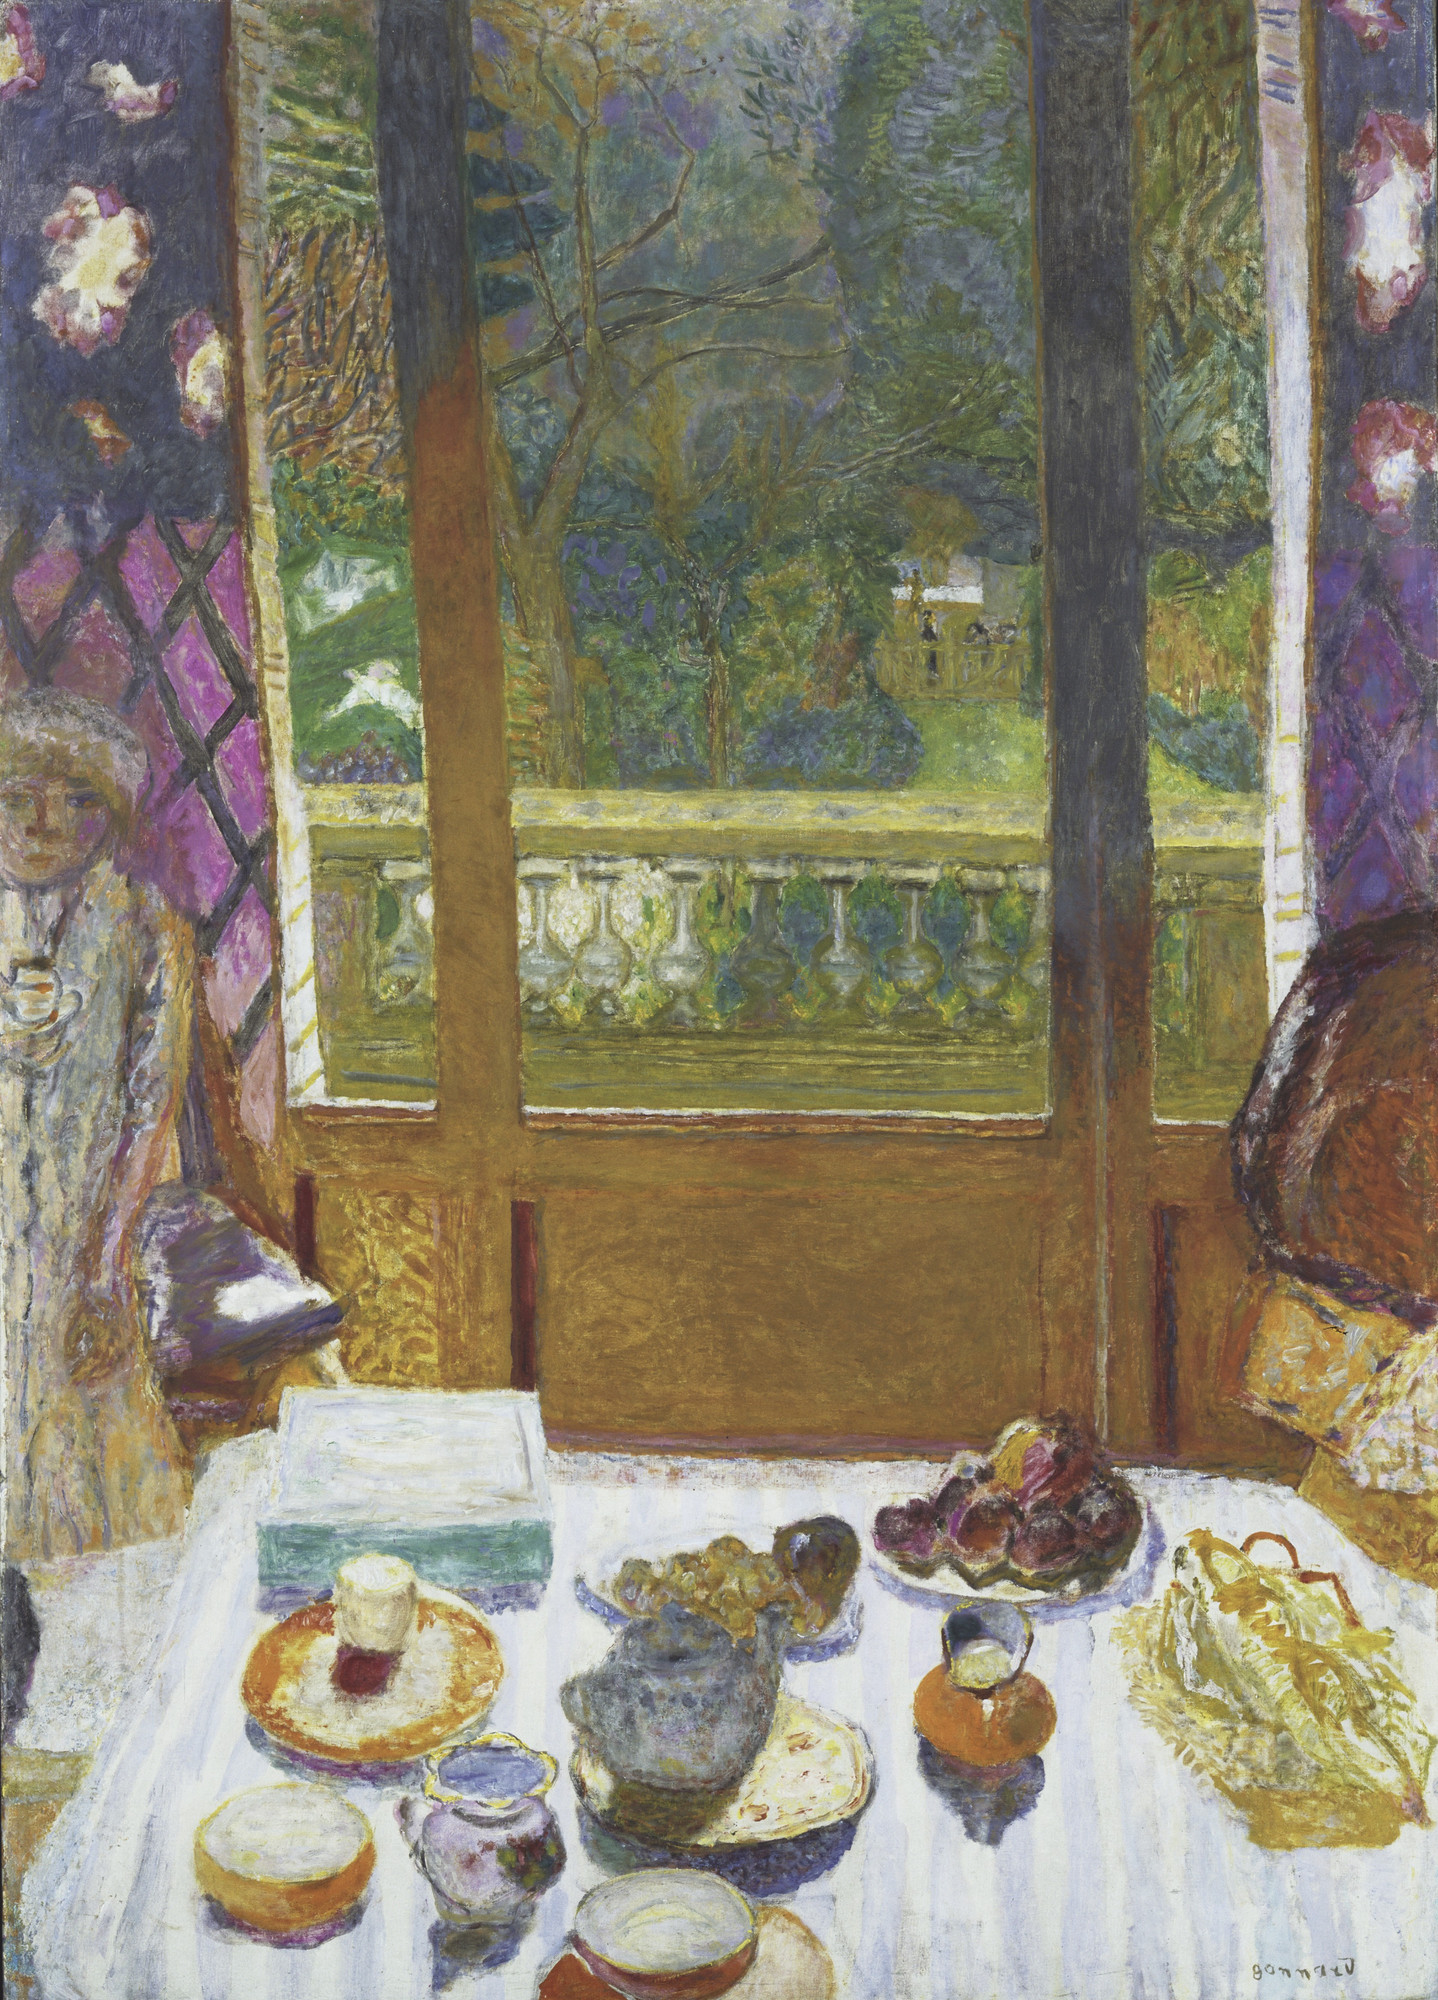 Pierre Bonnard. Dining Room Overlooking the Garden (The Breakfast Room). 1930-31